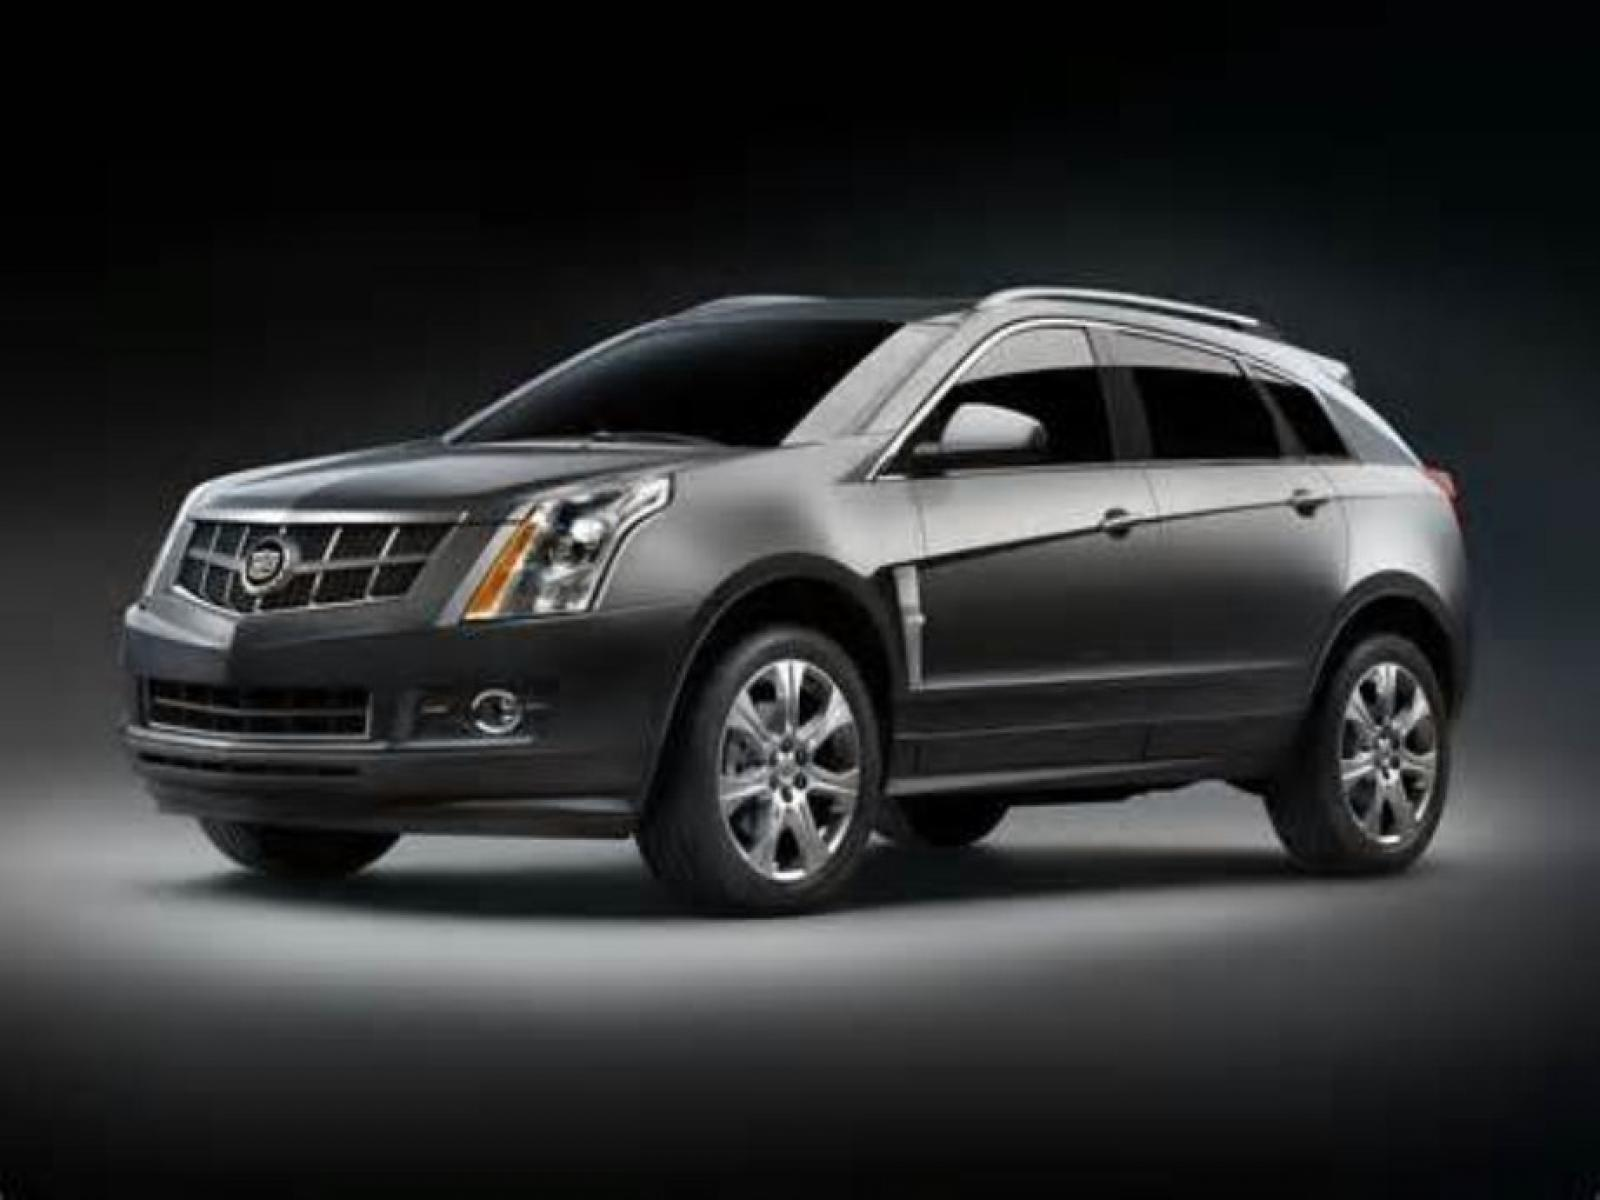 galleries detail cadillac pressroom content media vehicles en united pages photos srx states us